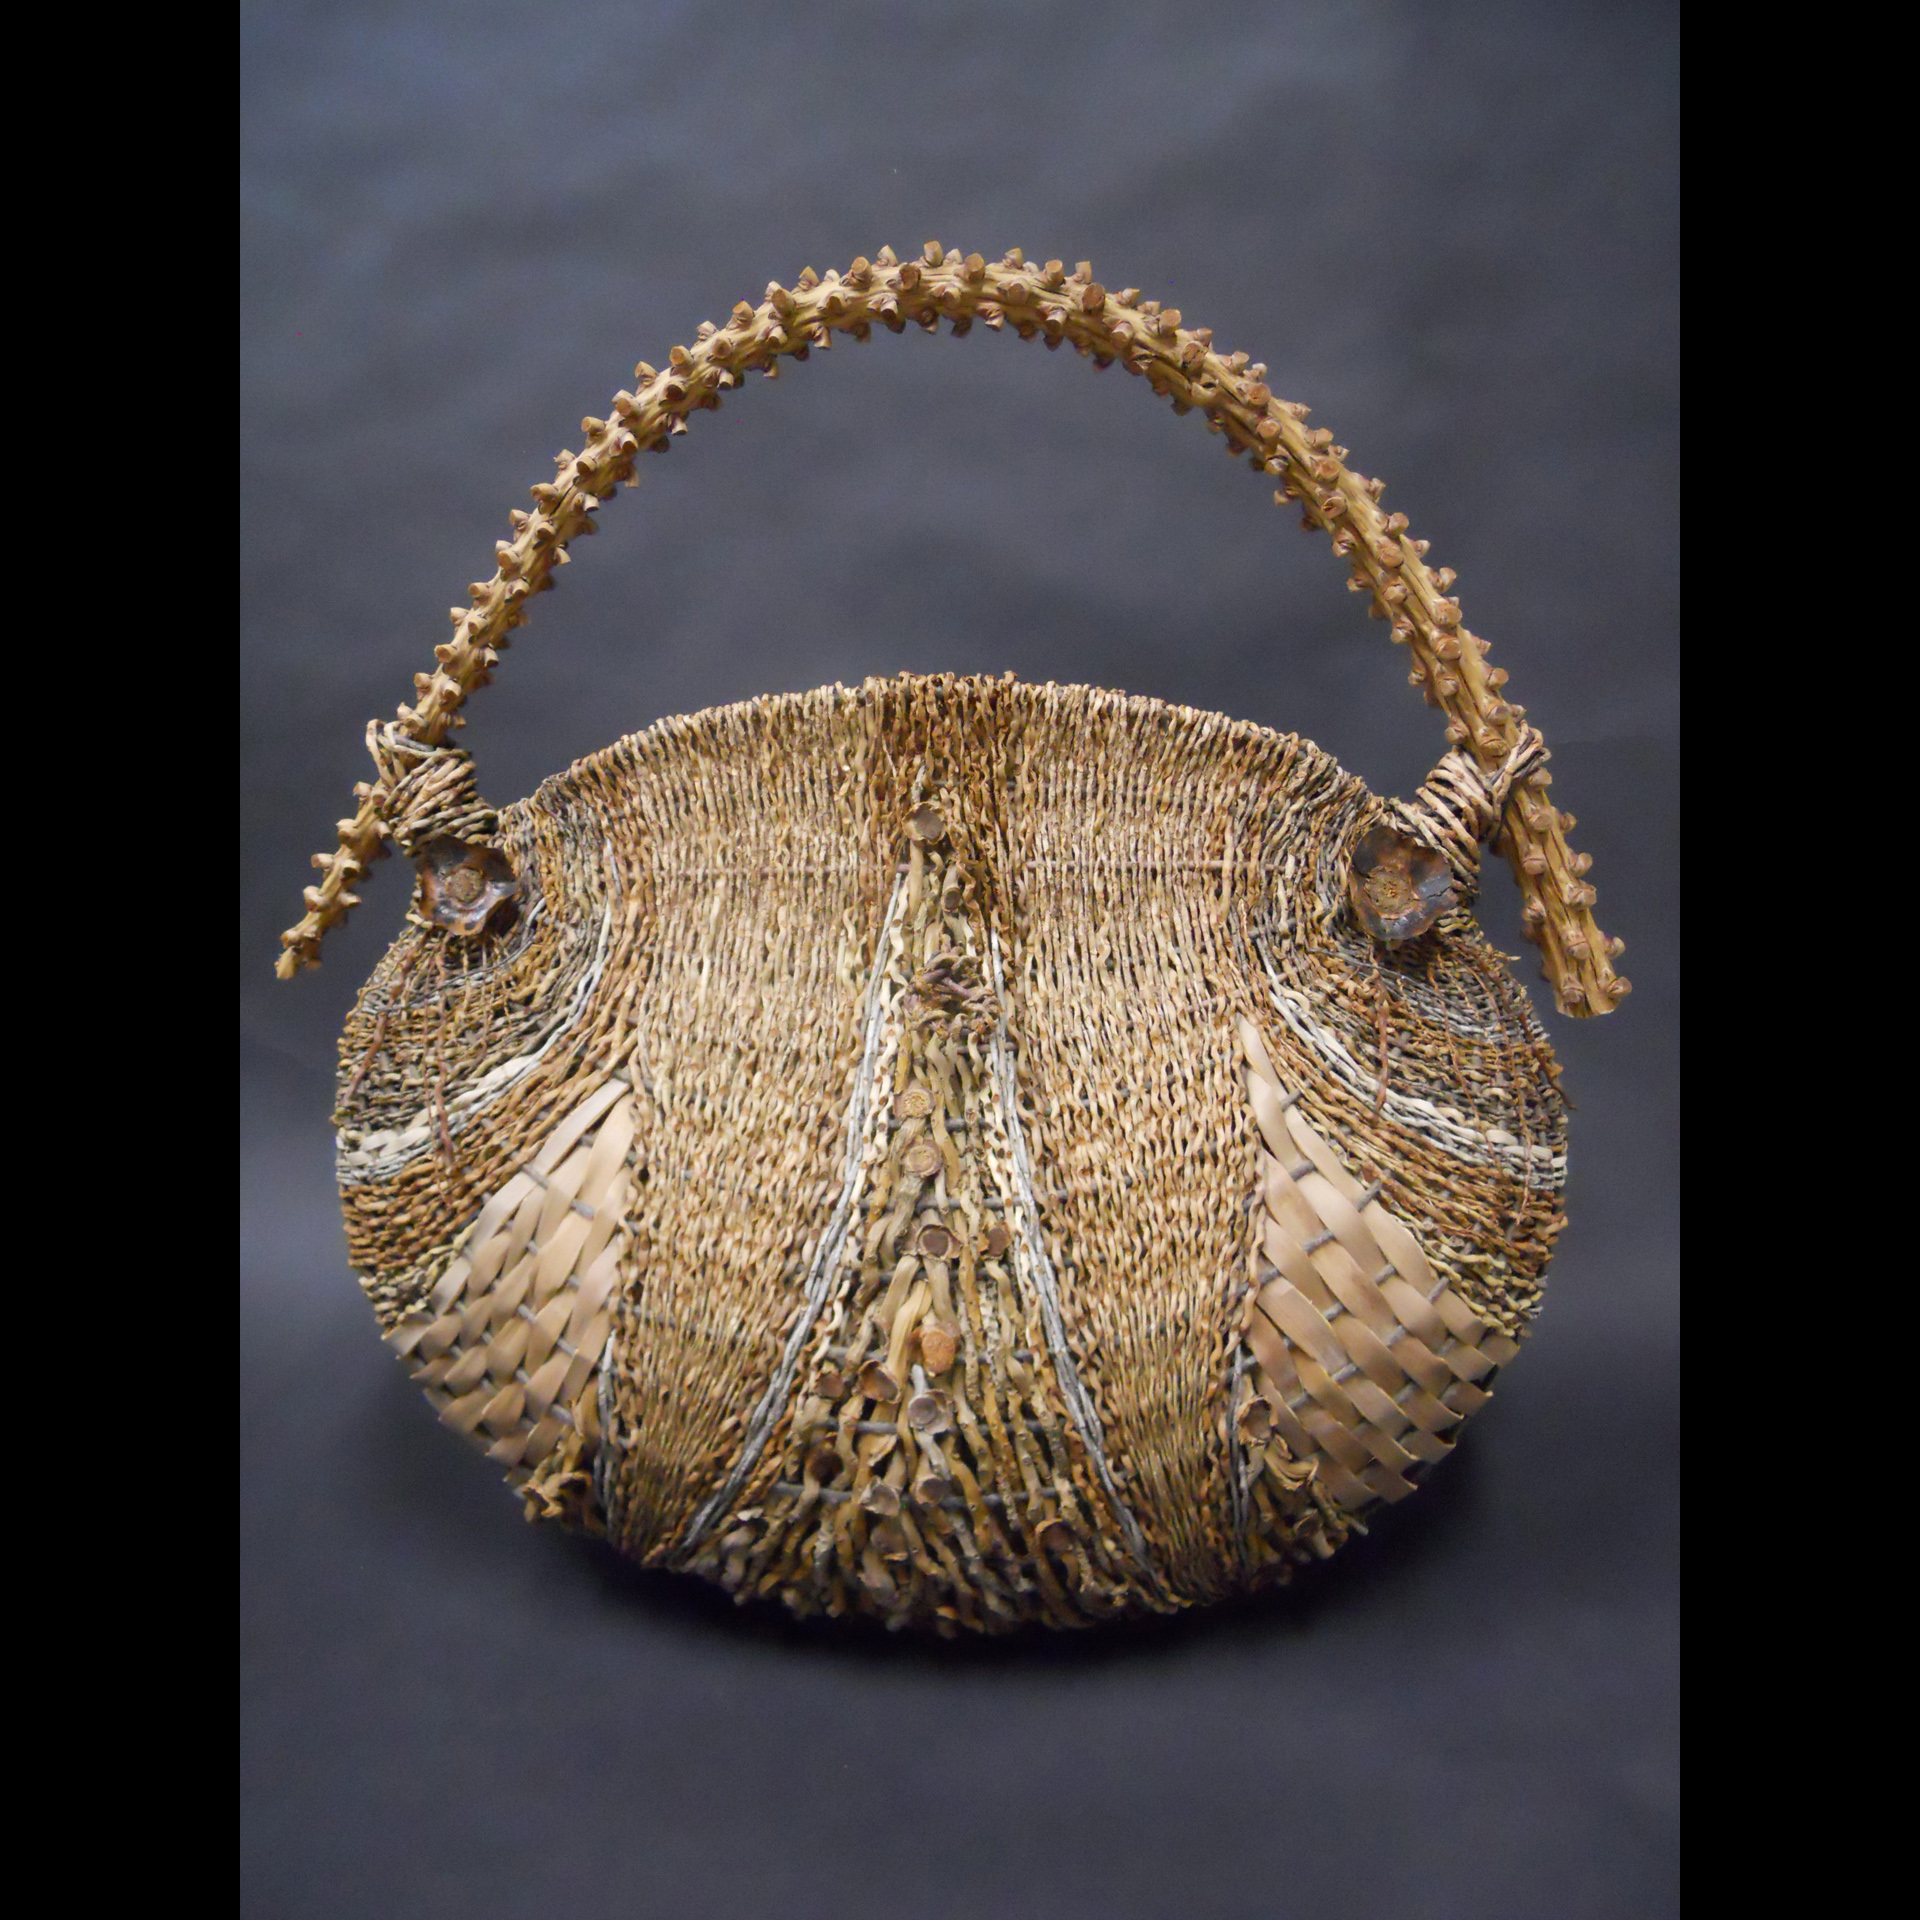 Basketry Artists